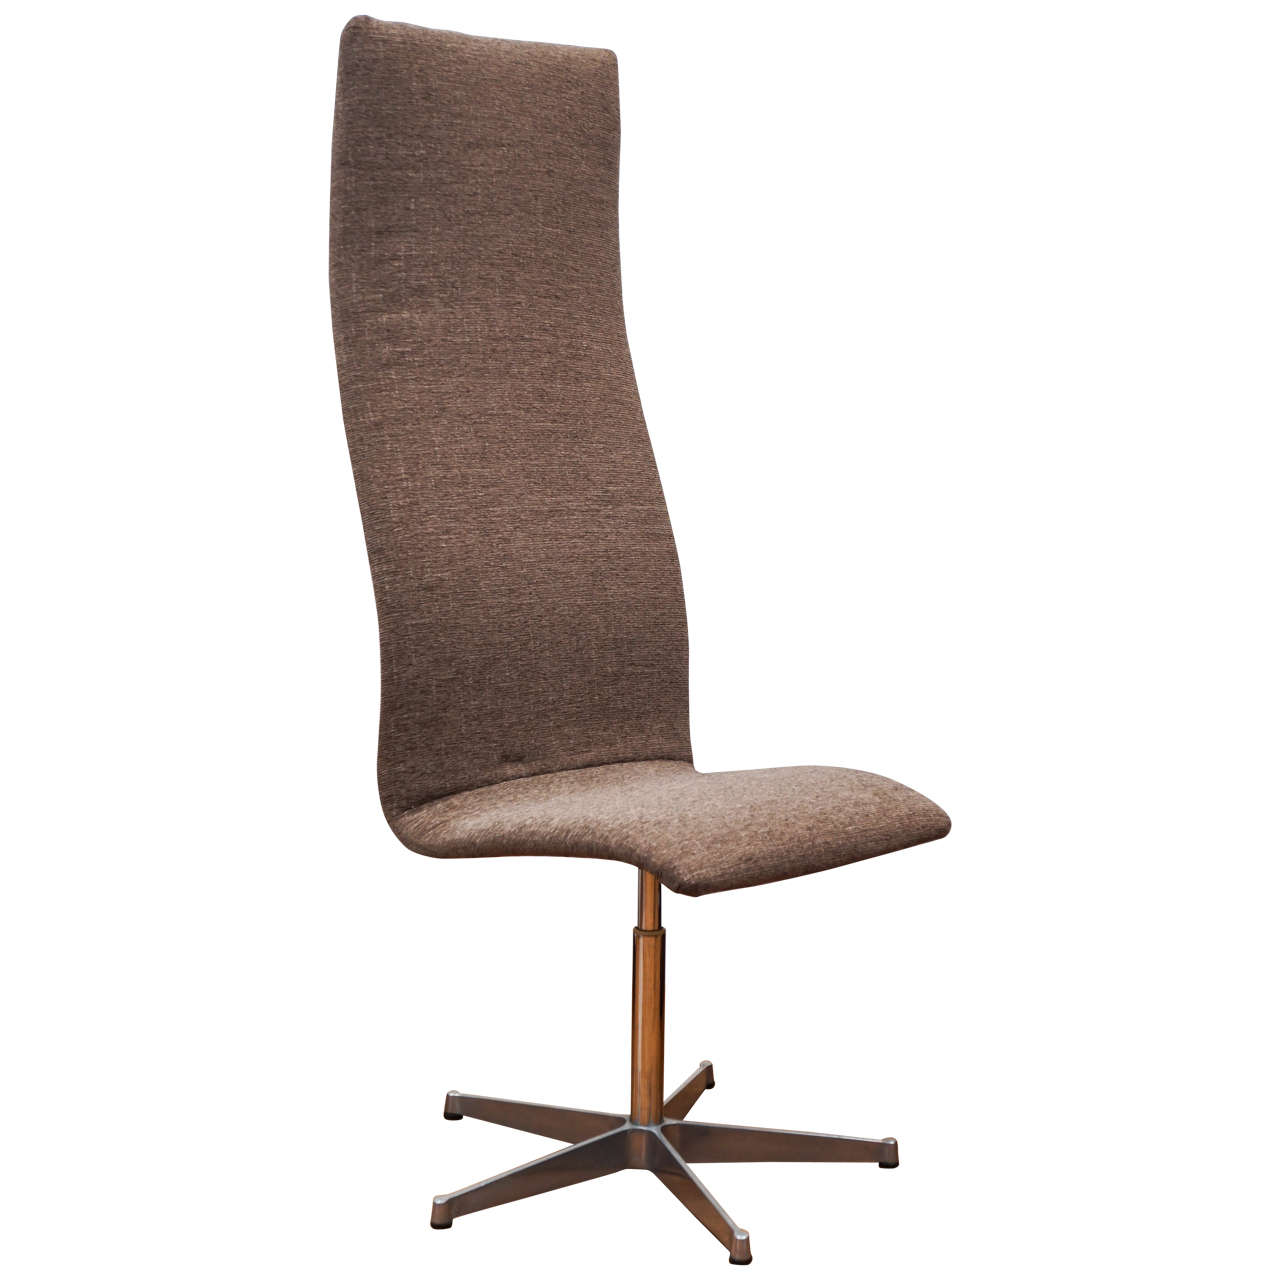 Arne jacobsen chair at 1stdibs for Jacobsen chair